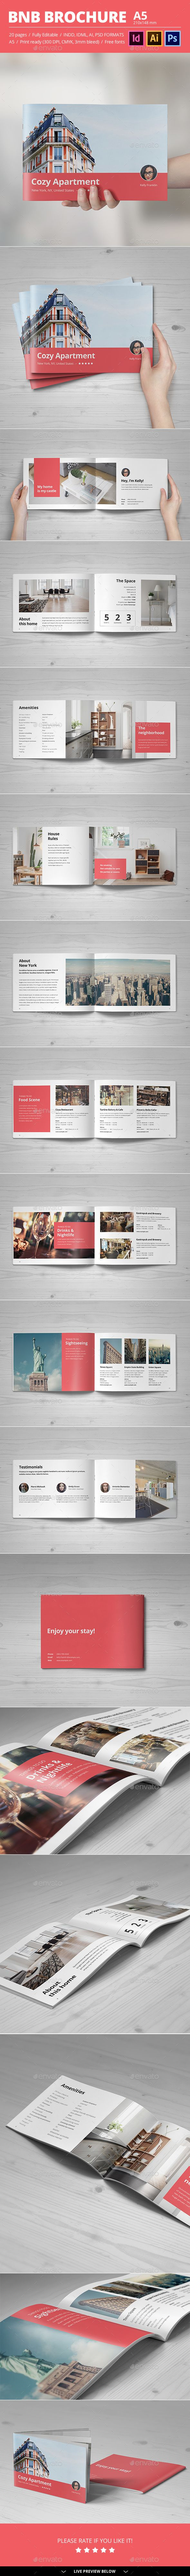 BNB Brochure Template PSD, InDesign INDD, AI Illustrator - 20 Pages, A5